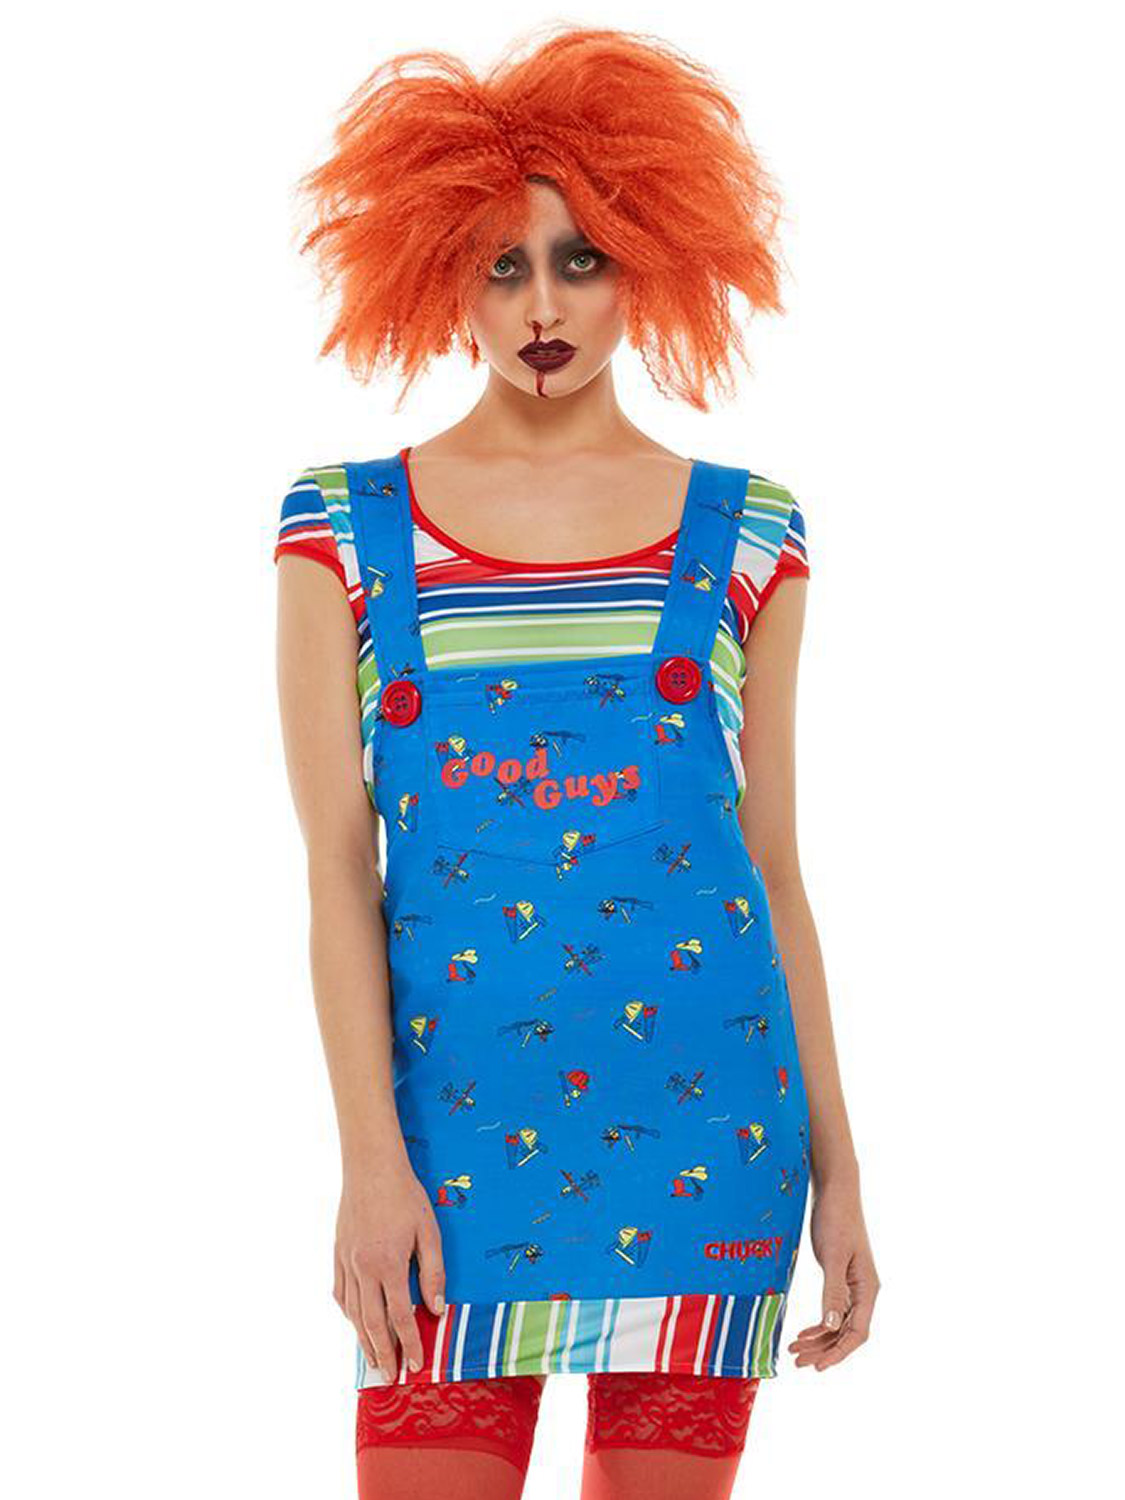 Adult Chucky Costume Mens Ladies Killer Doll Halloween Horror Fancy Dress Outfit